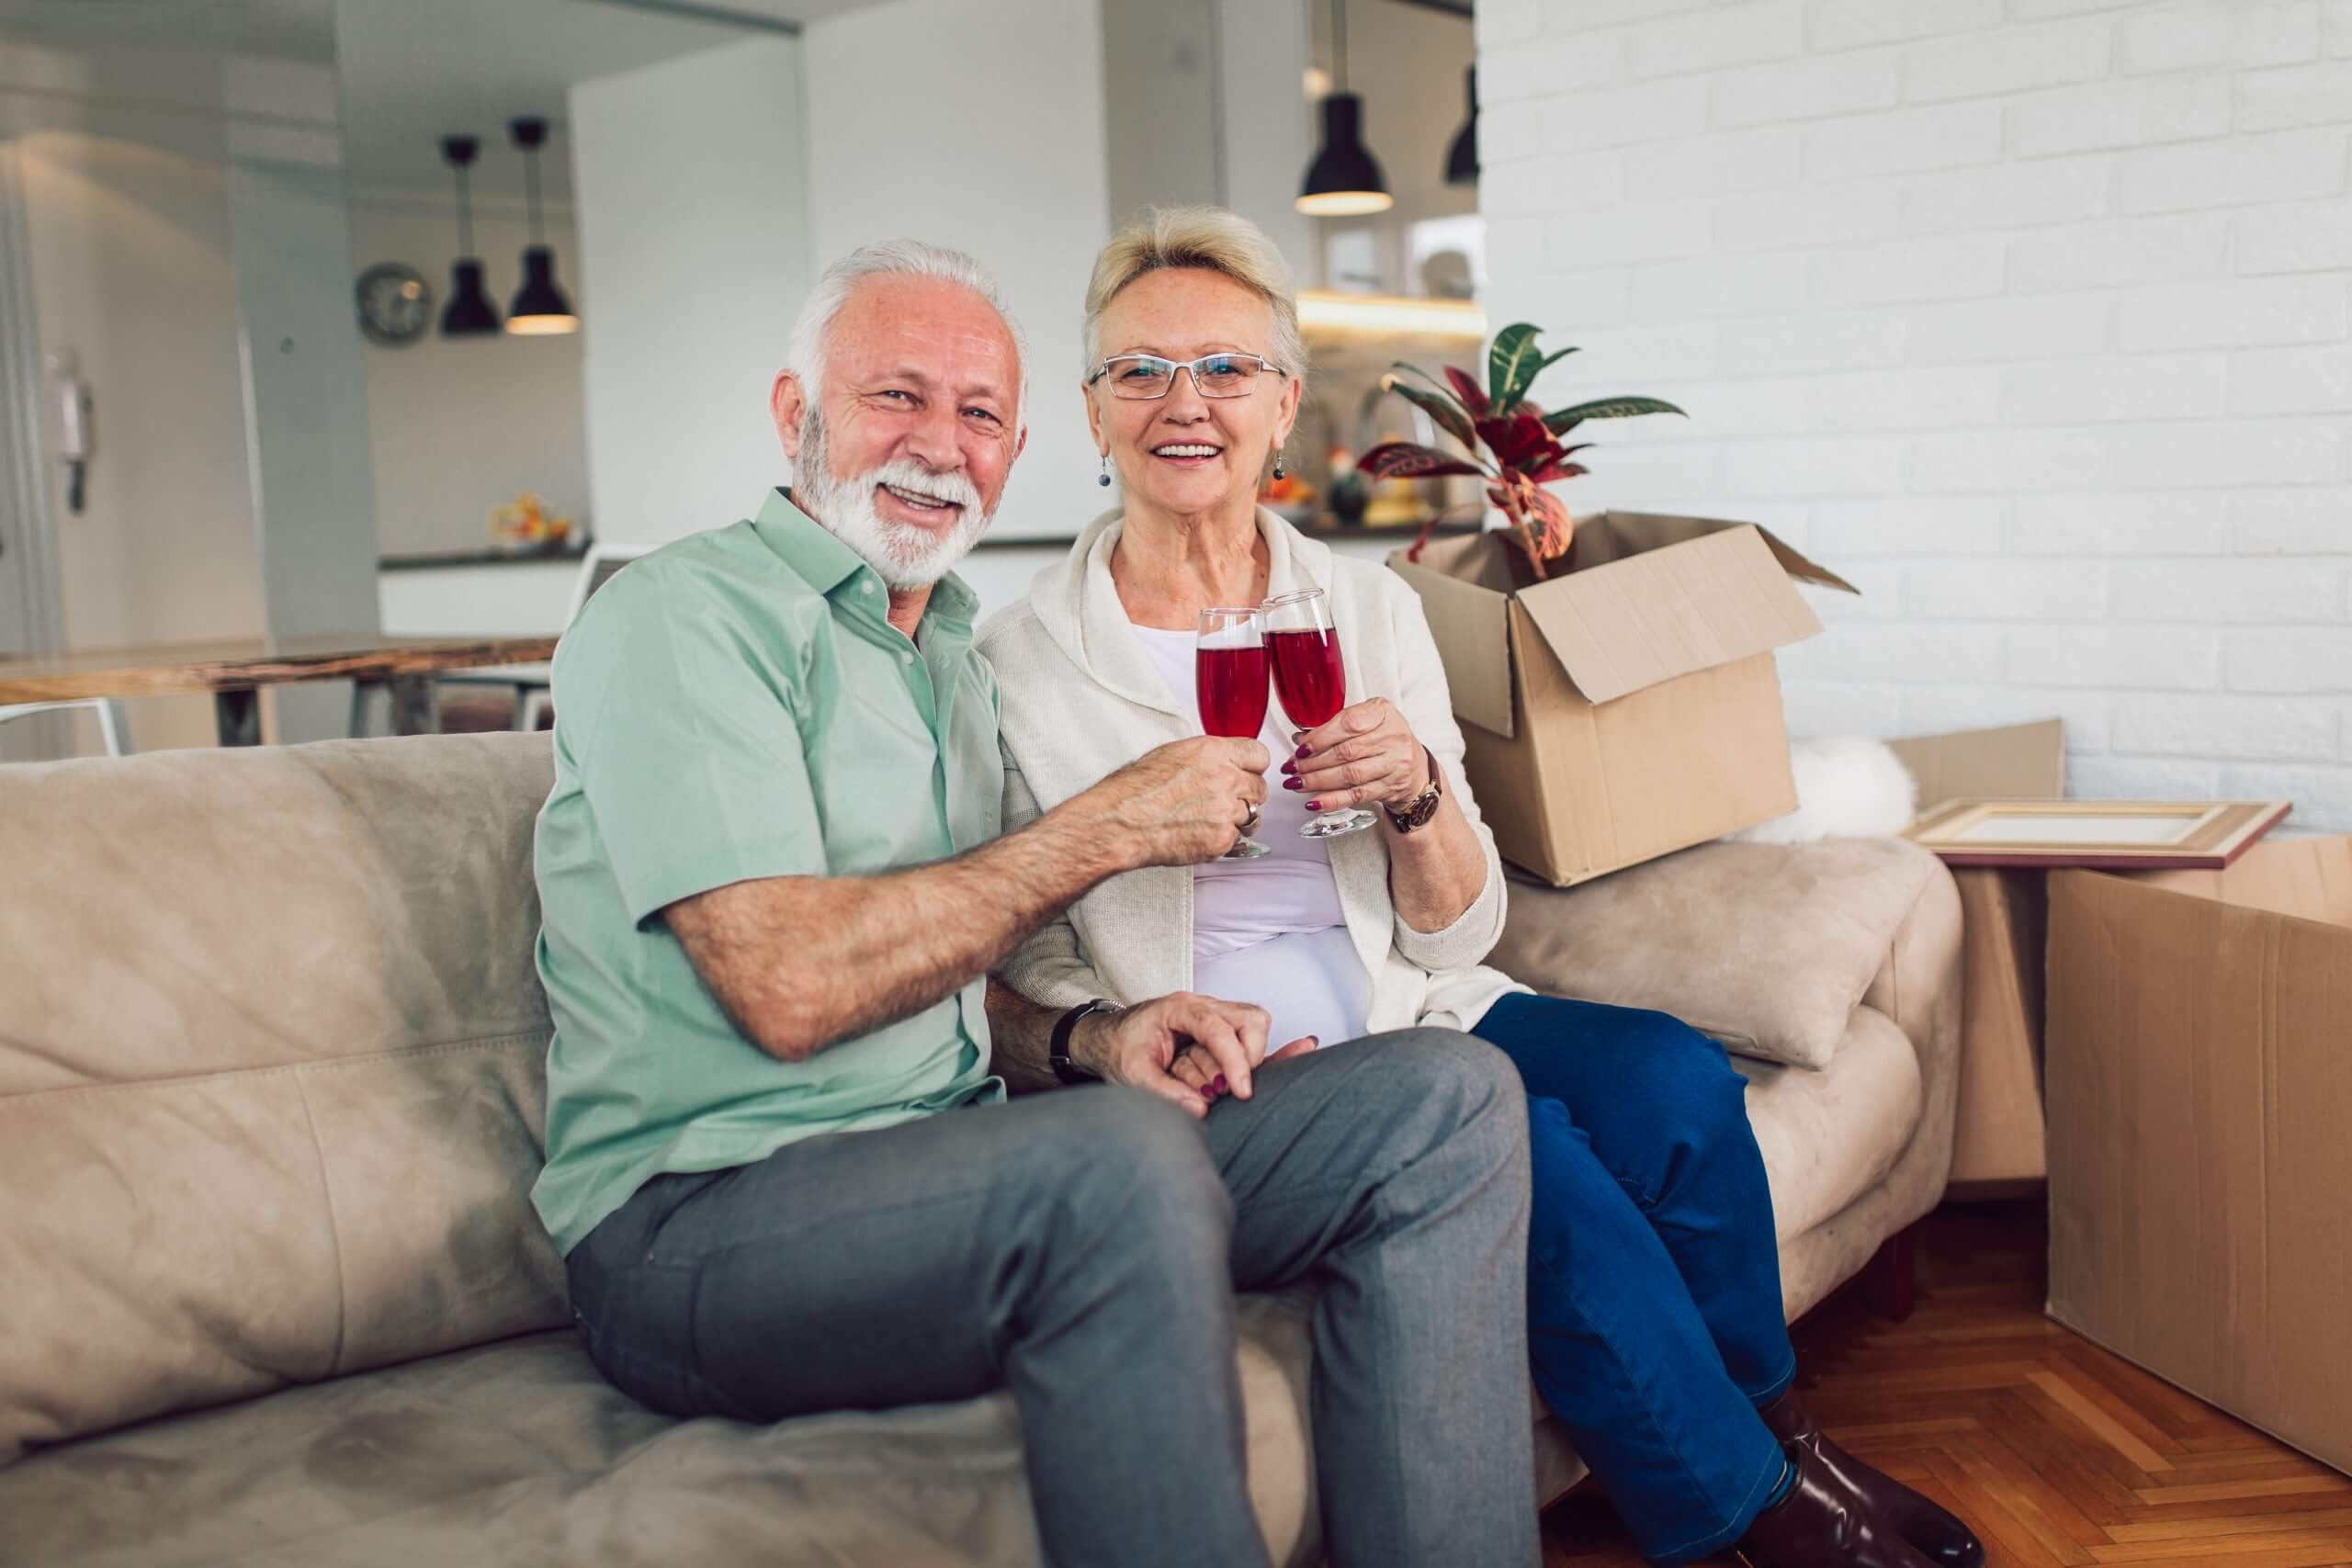 Settling in with senior moving experts